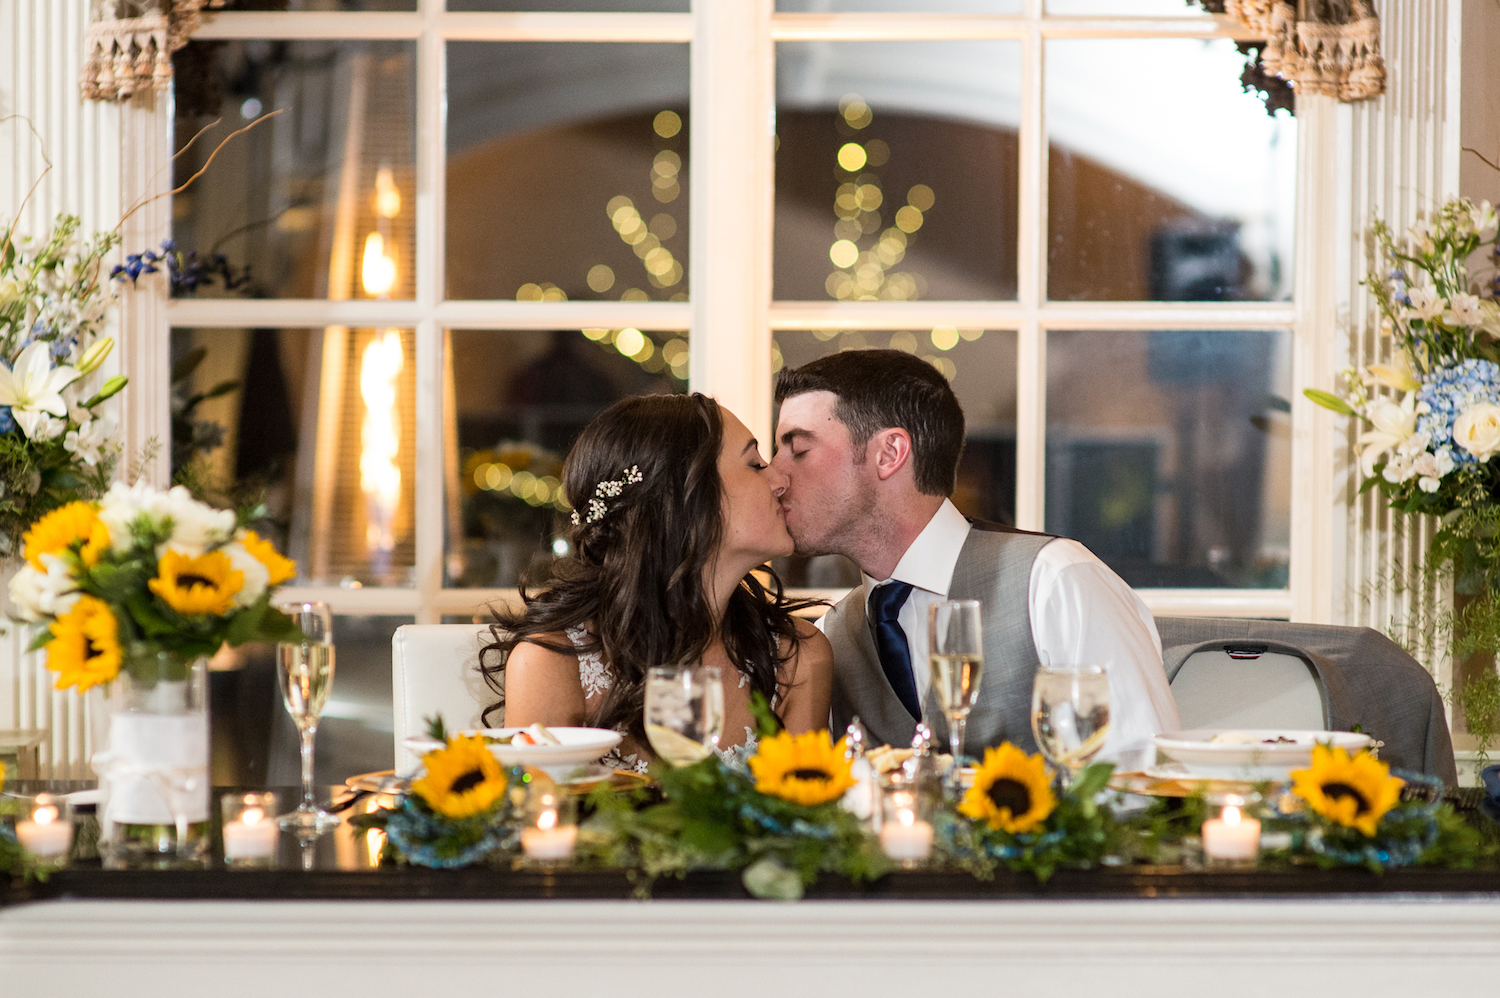 madeline&john-kissing-at-sweetheart-table-wedding-photography-nj